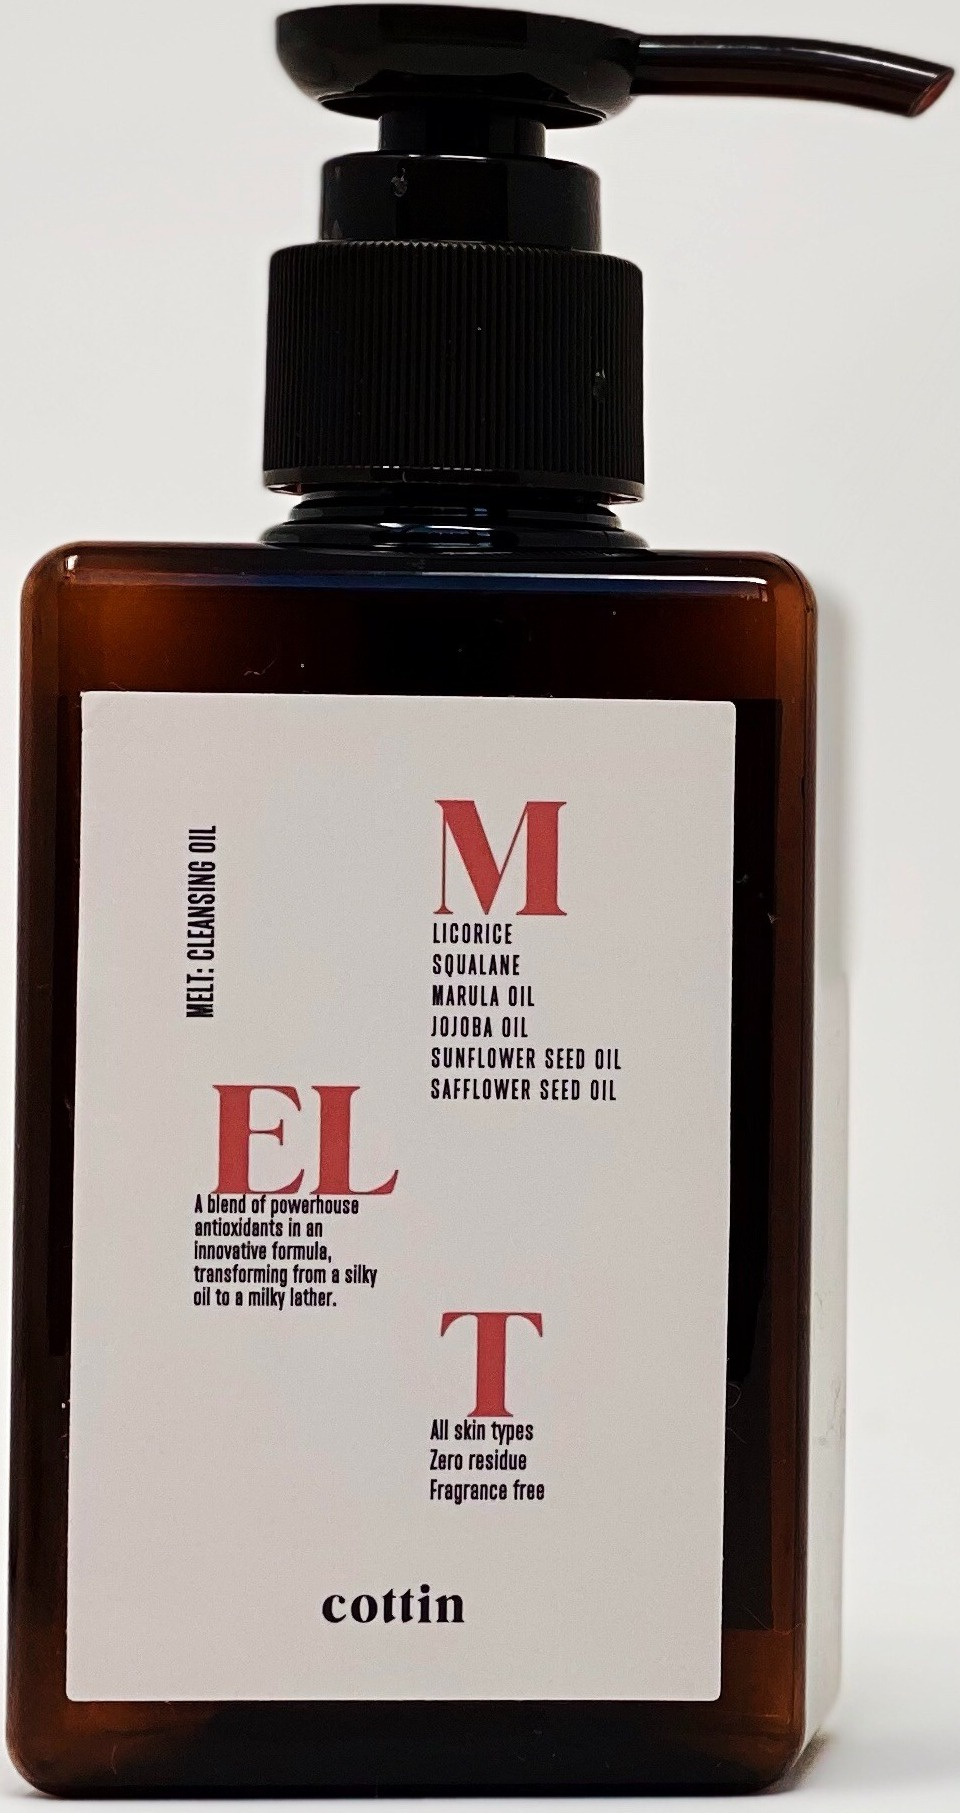 Cottin Melt: Cloudy Cleansing Oil